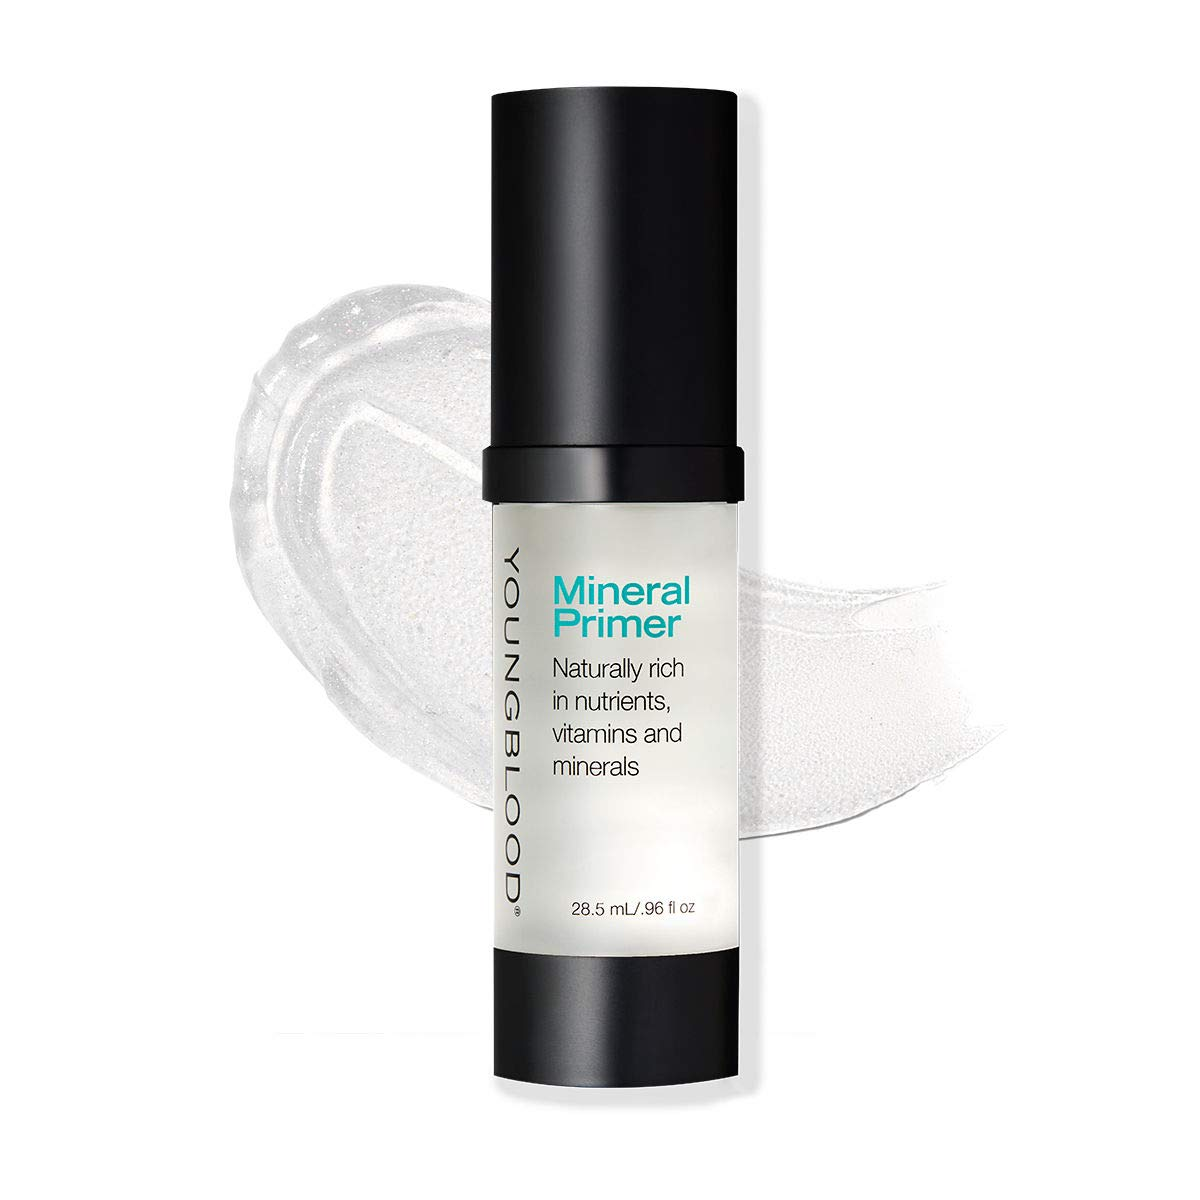 Youngblood Mineral Foundation, Primer, 1 Ounce by Youngblood